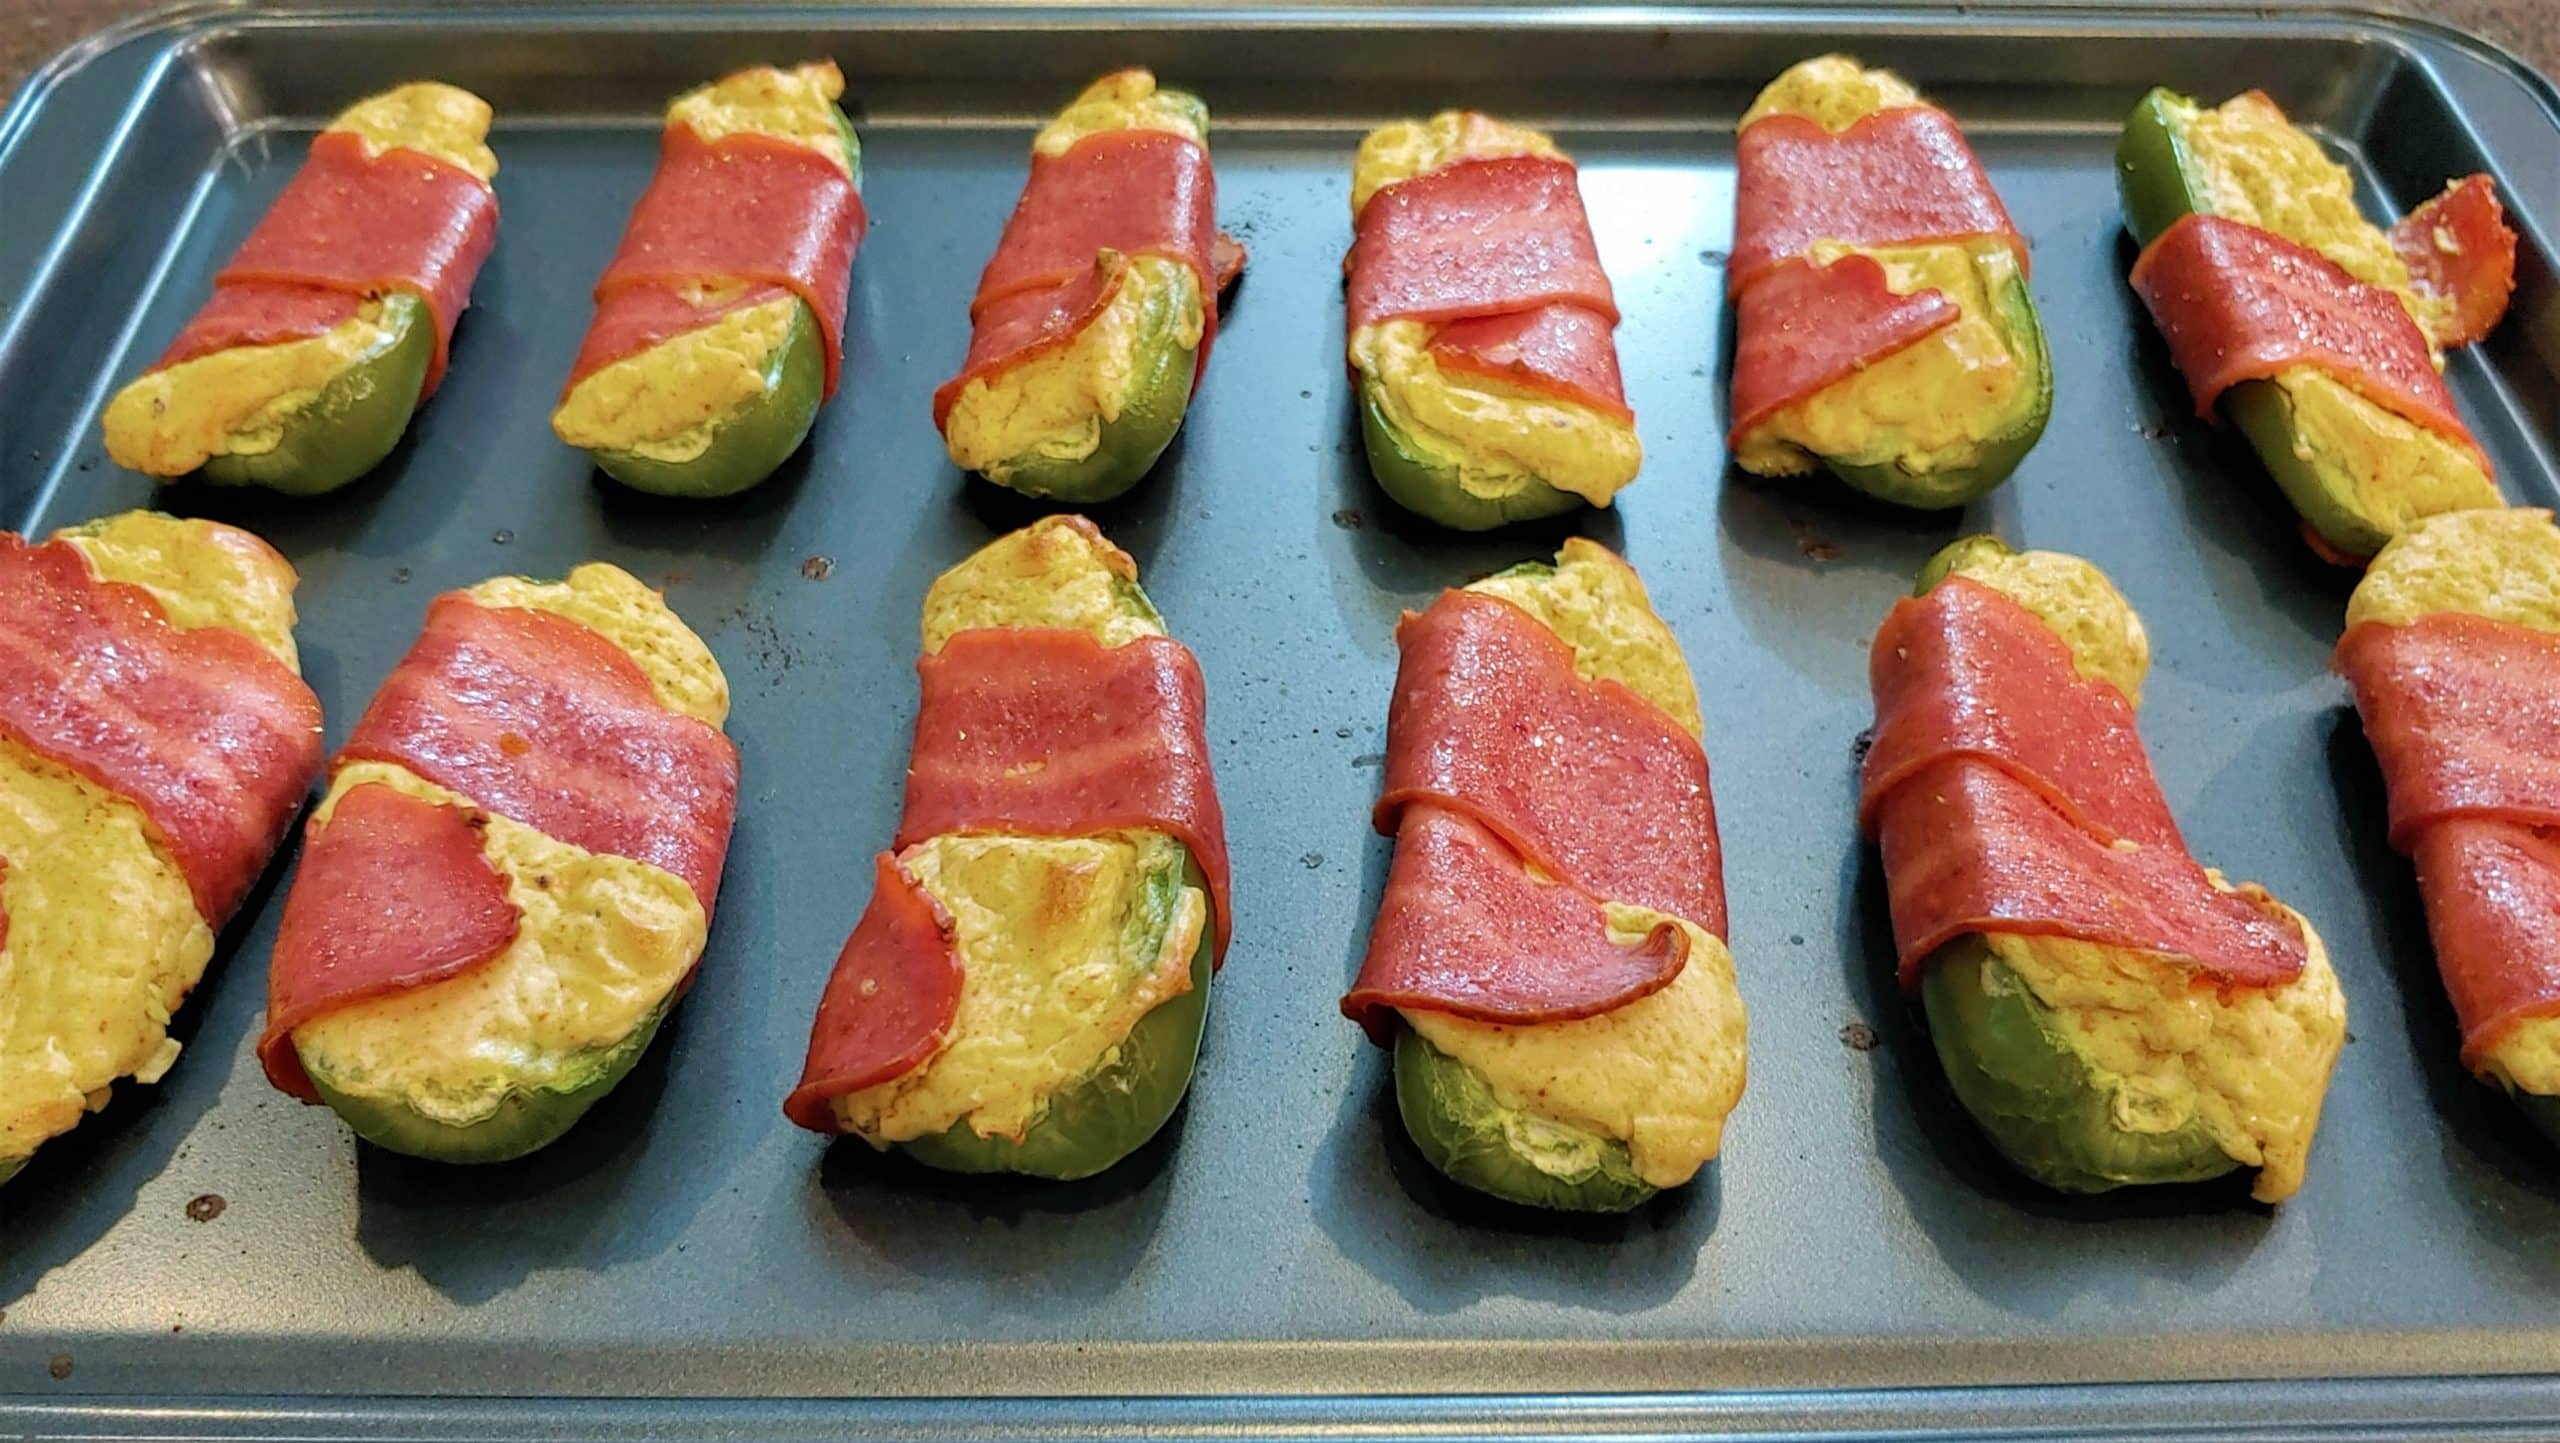 Jalapeno poppers bacon wrapped - Dining in with Danielle